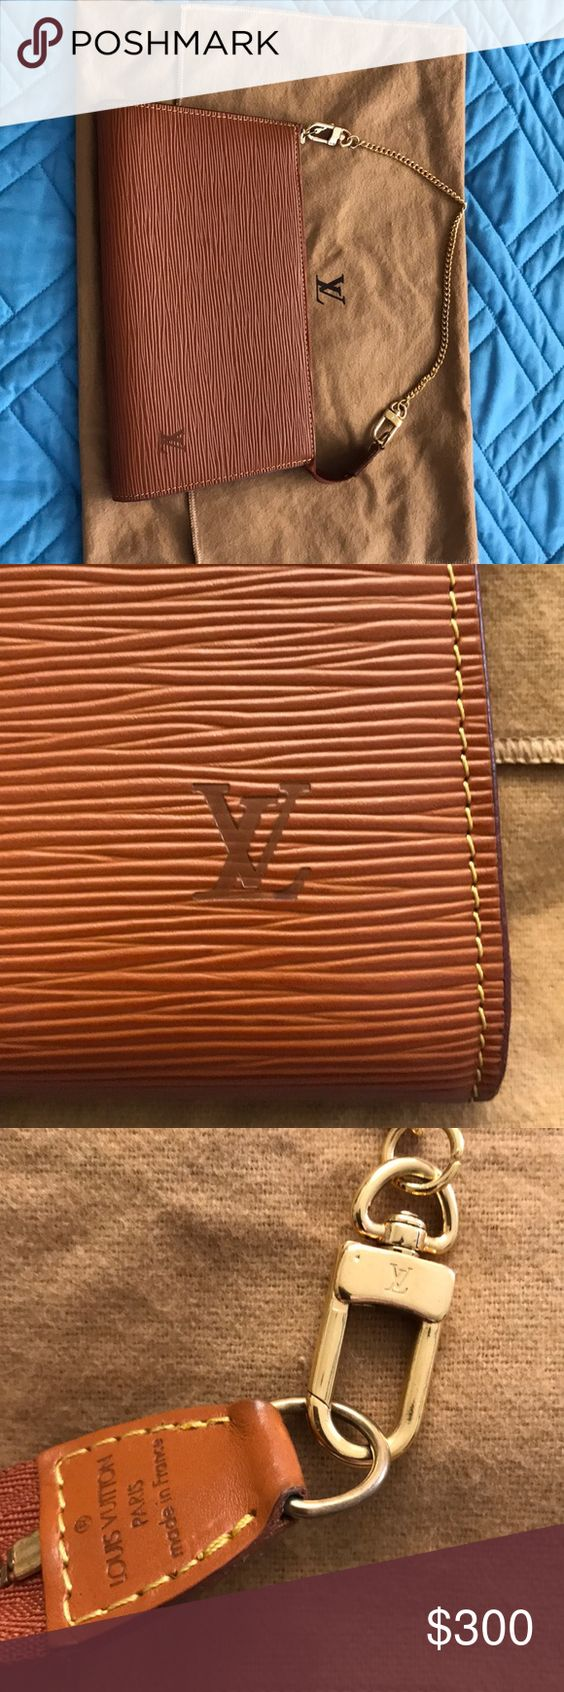 Louis Vuitton EPI pochette AUTHENTIC Louis Vuitton epi pochette with gold chain handle in brown / fawn/ Orange color in good condition. Inside has few small stains in interior from normal use but won't affect use. Hardware and chain still shiny overall wi